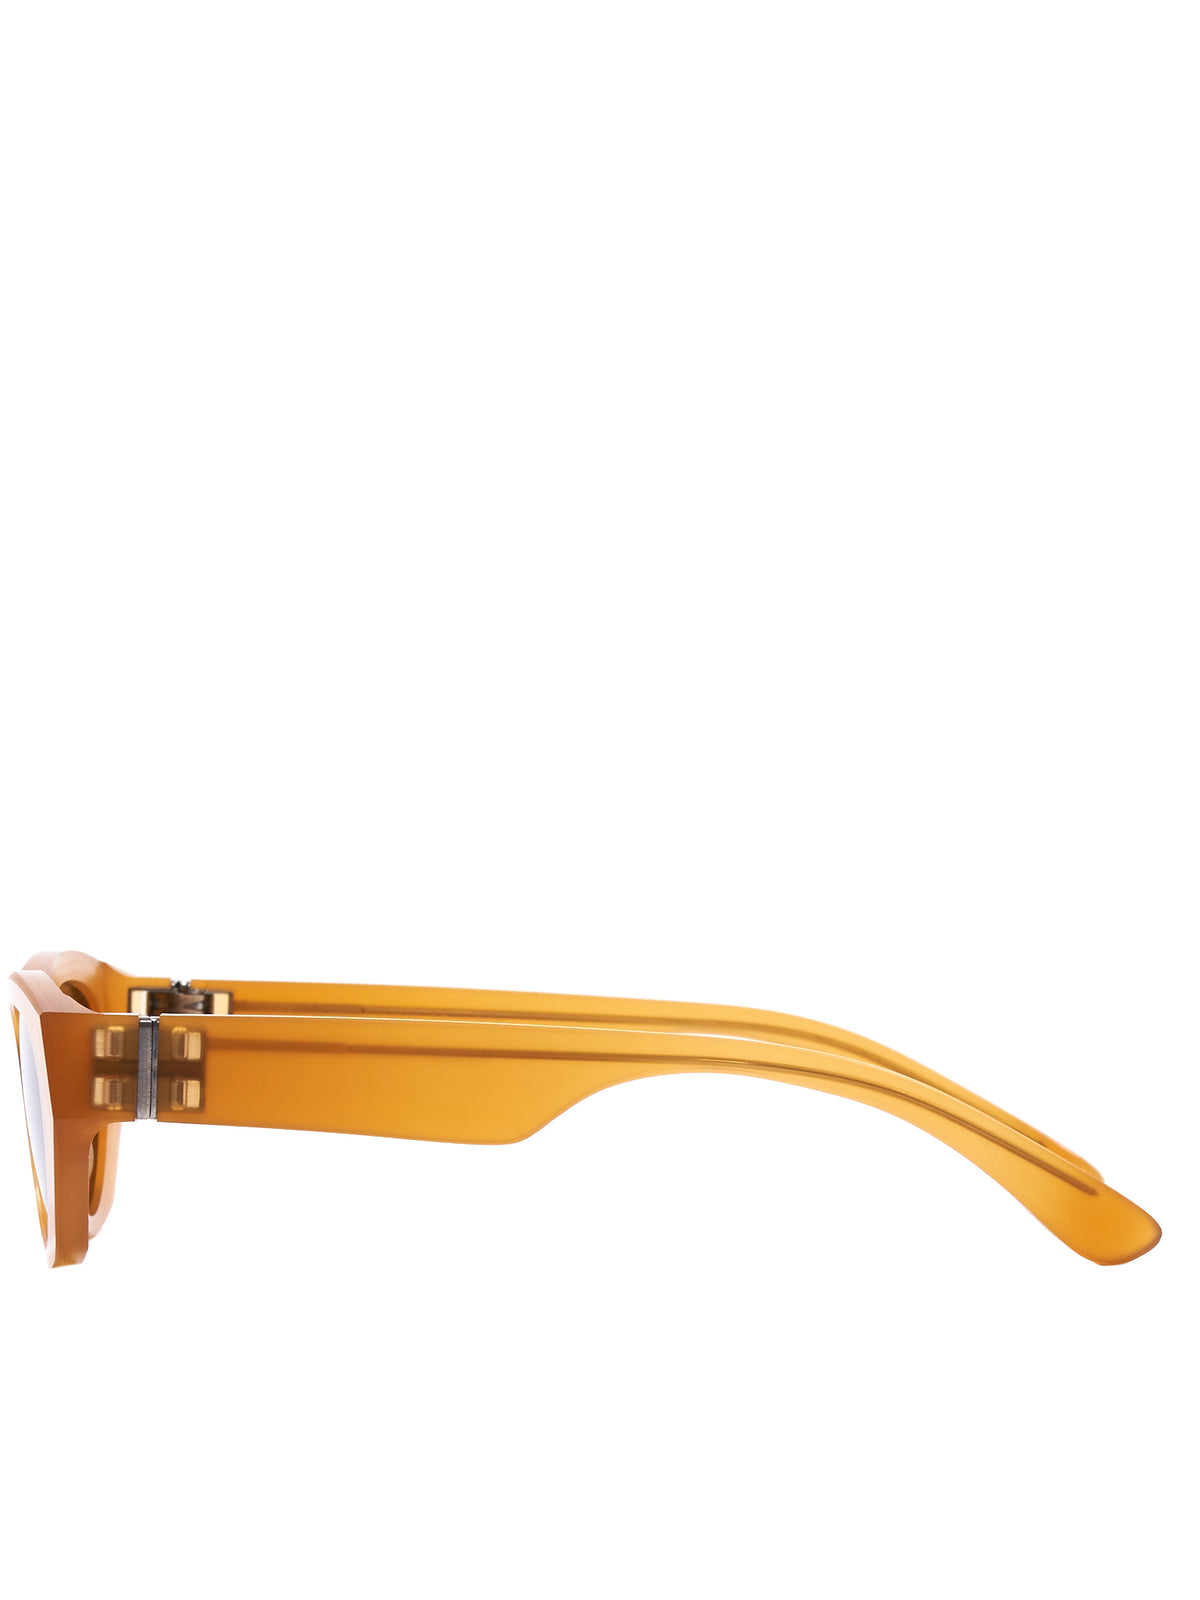 'MMRAW015' Amber Sunglasses (MMRAW015-AMBER-RAWBROWN)